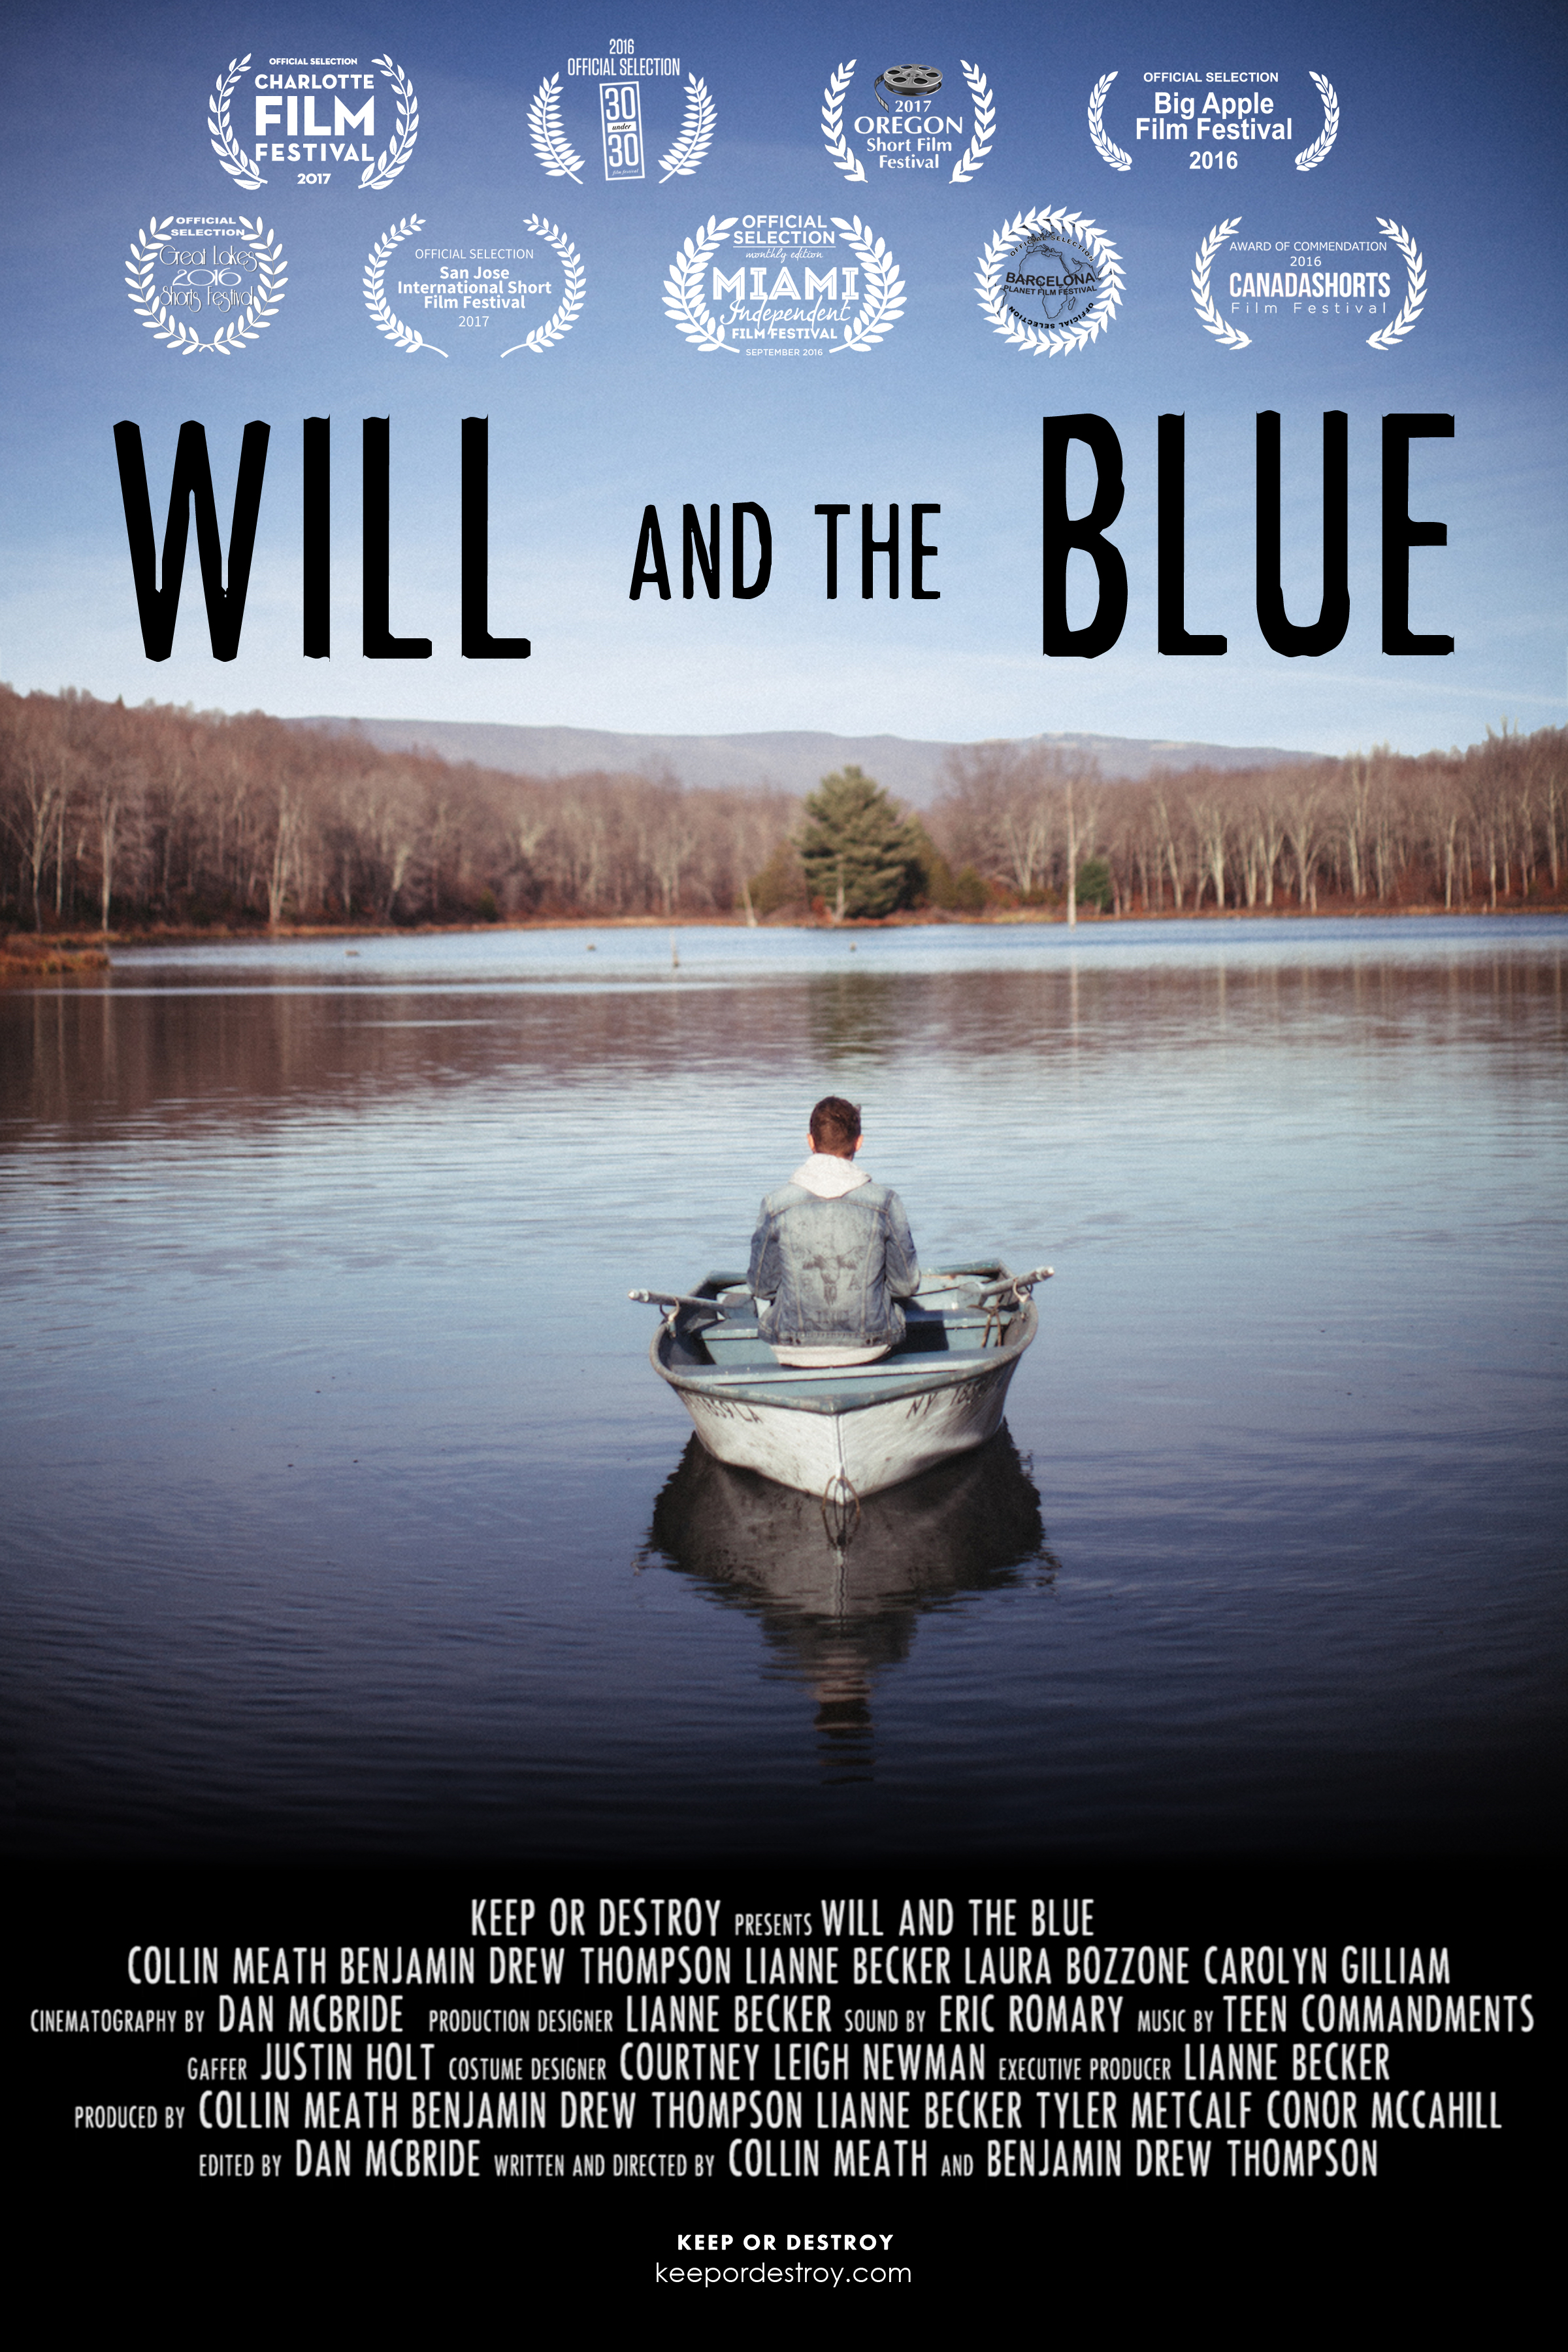 Will and the Blue - Will and the Blue is a surreal dark comedy about the universal struggle of accepting change in our lives. Will and the Blue is an award winning short film and has been featured at over eleven film festivals including Big Apple, 30Under30, Charlotte Film Festival and San Jose International Short Film Festival.